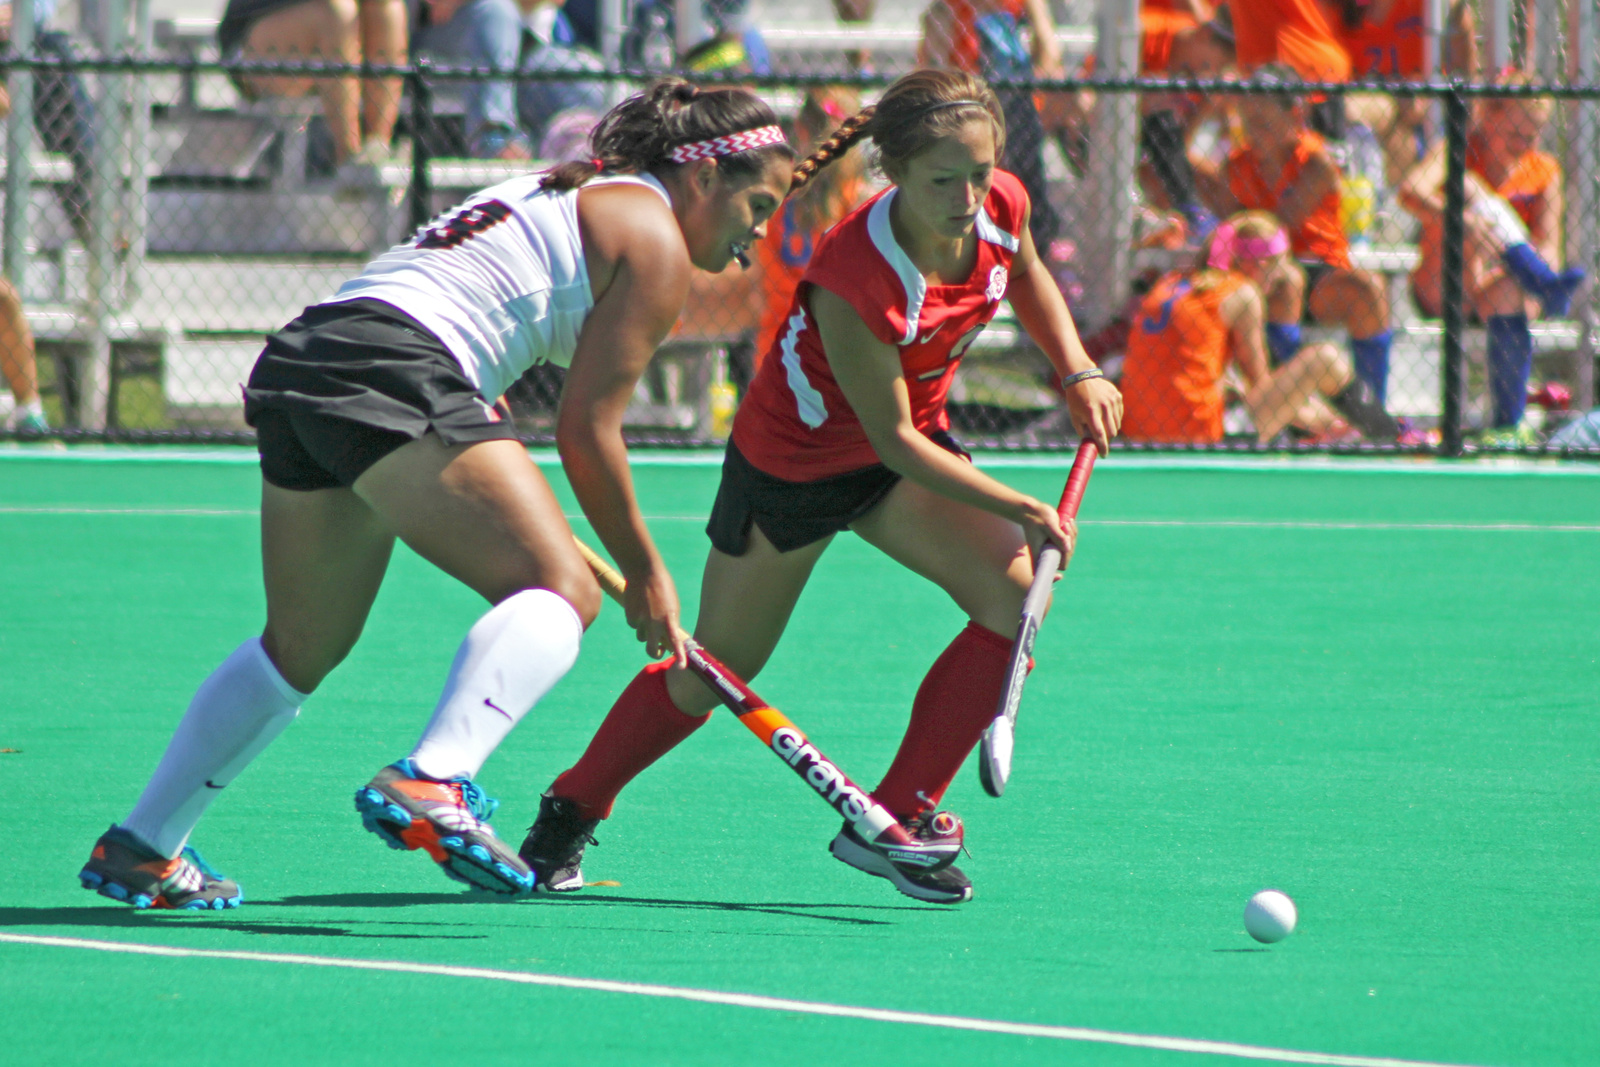 Junior forward Peanut Johnson (right) fights for posession of the ball during a game against Ball State Sept. 14 at Buckeye Varsity Field. OSU won, 3-2 in overtime. Credit: Melissa Prax / Lantern photographer